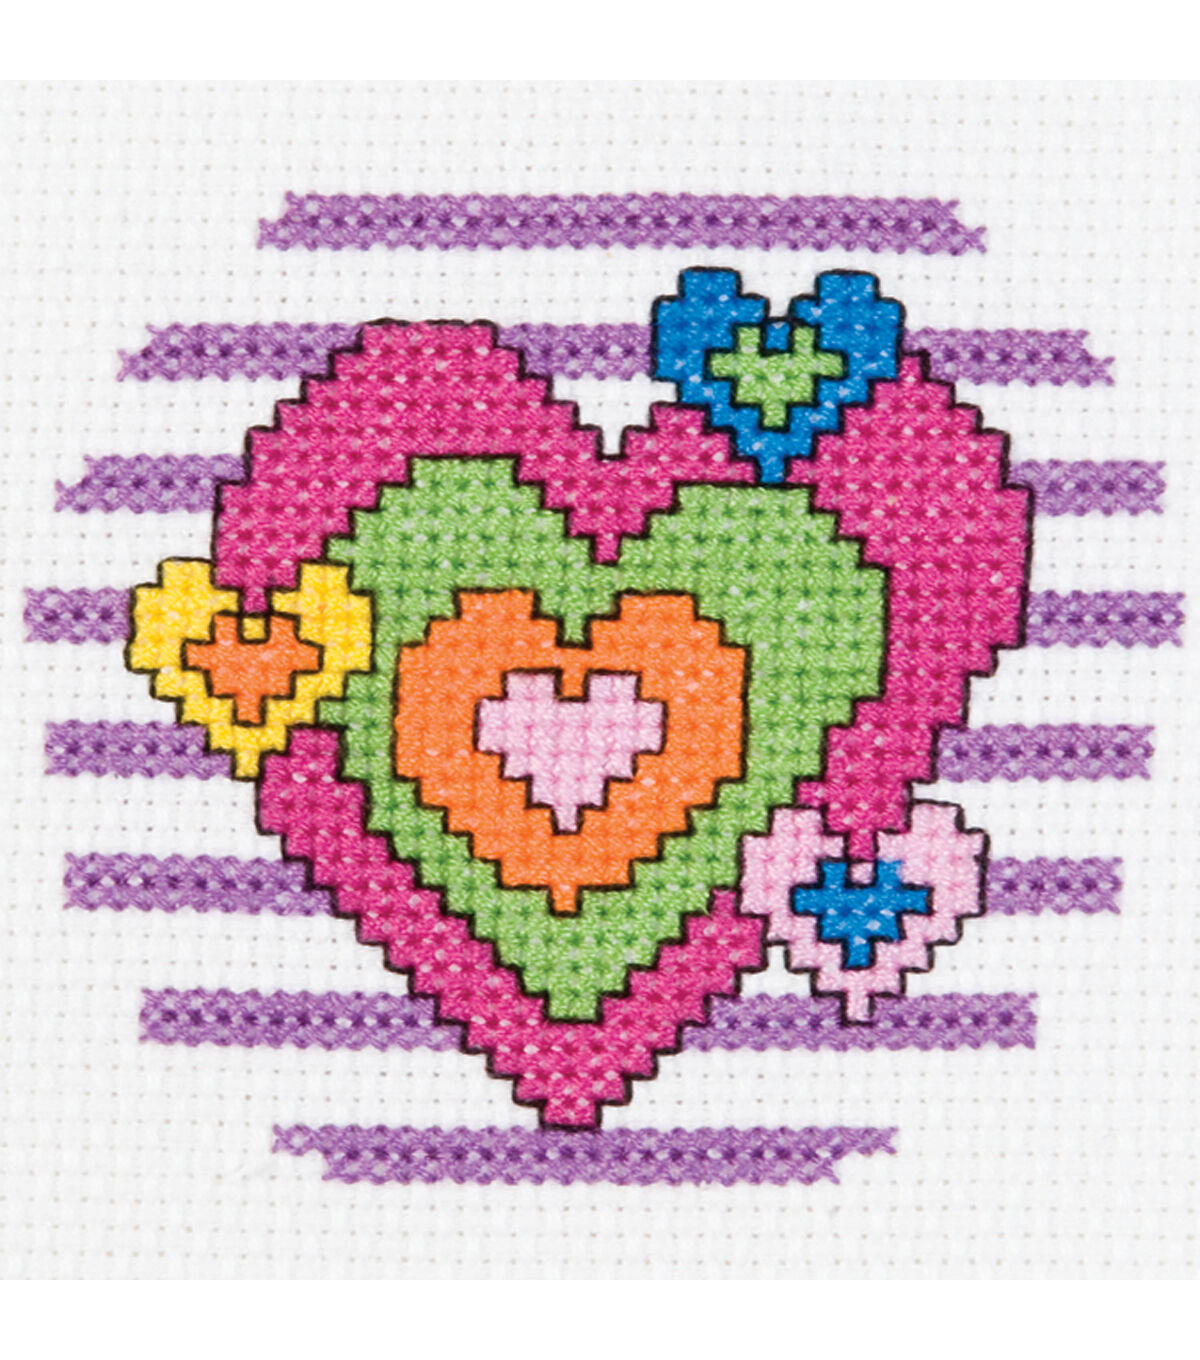 Zamtac Wholesale Needlework,Stitch,14CT Cross Stitch,Sets For Embroidery Kits,Small Lovely Dog Patterns Counted Cross-Stitching Cross Stitch Fabric CT number: 14CT white canvas